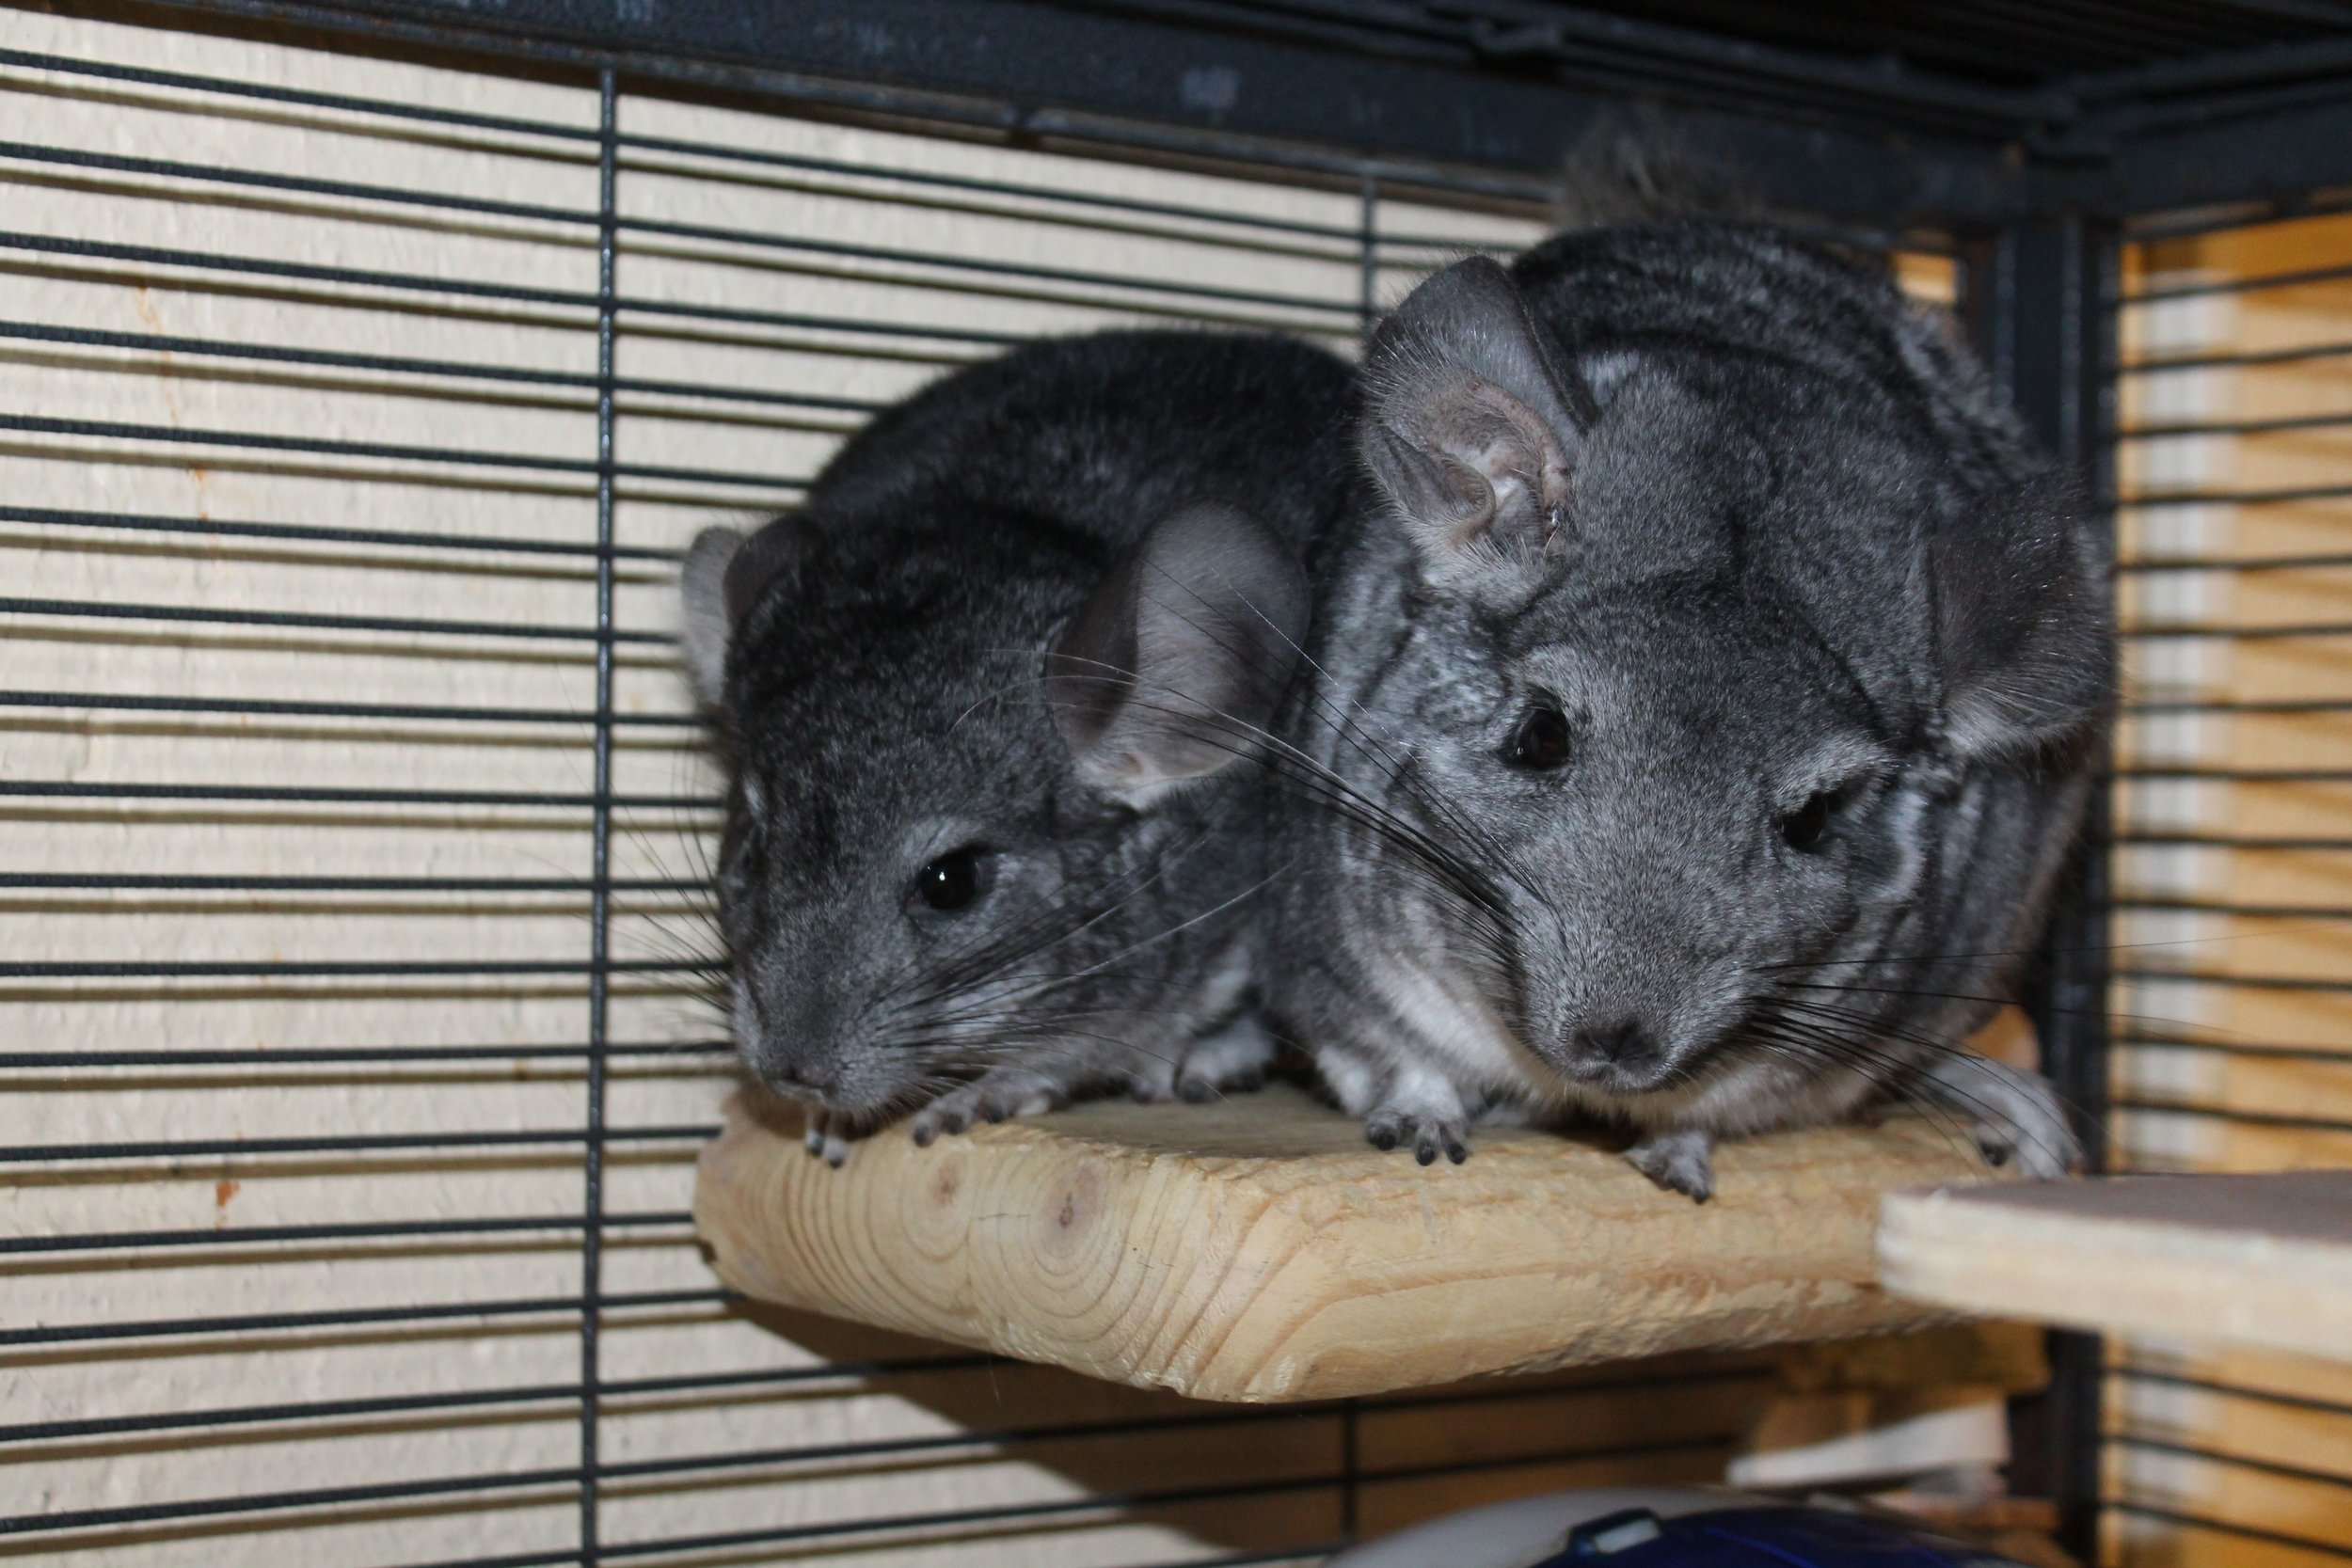 Fiona and Shrek are a mother and son bonded pair of chinchillas. They are quite active and need a very tall cage for hopping around. They would also enjoy a safe space out of their cage to scamper about and do some wall surfing!As a nocturnal species, they will be most active at night.